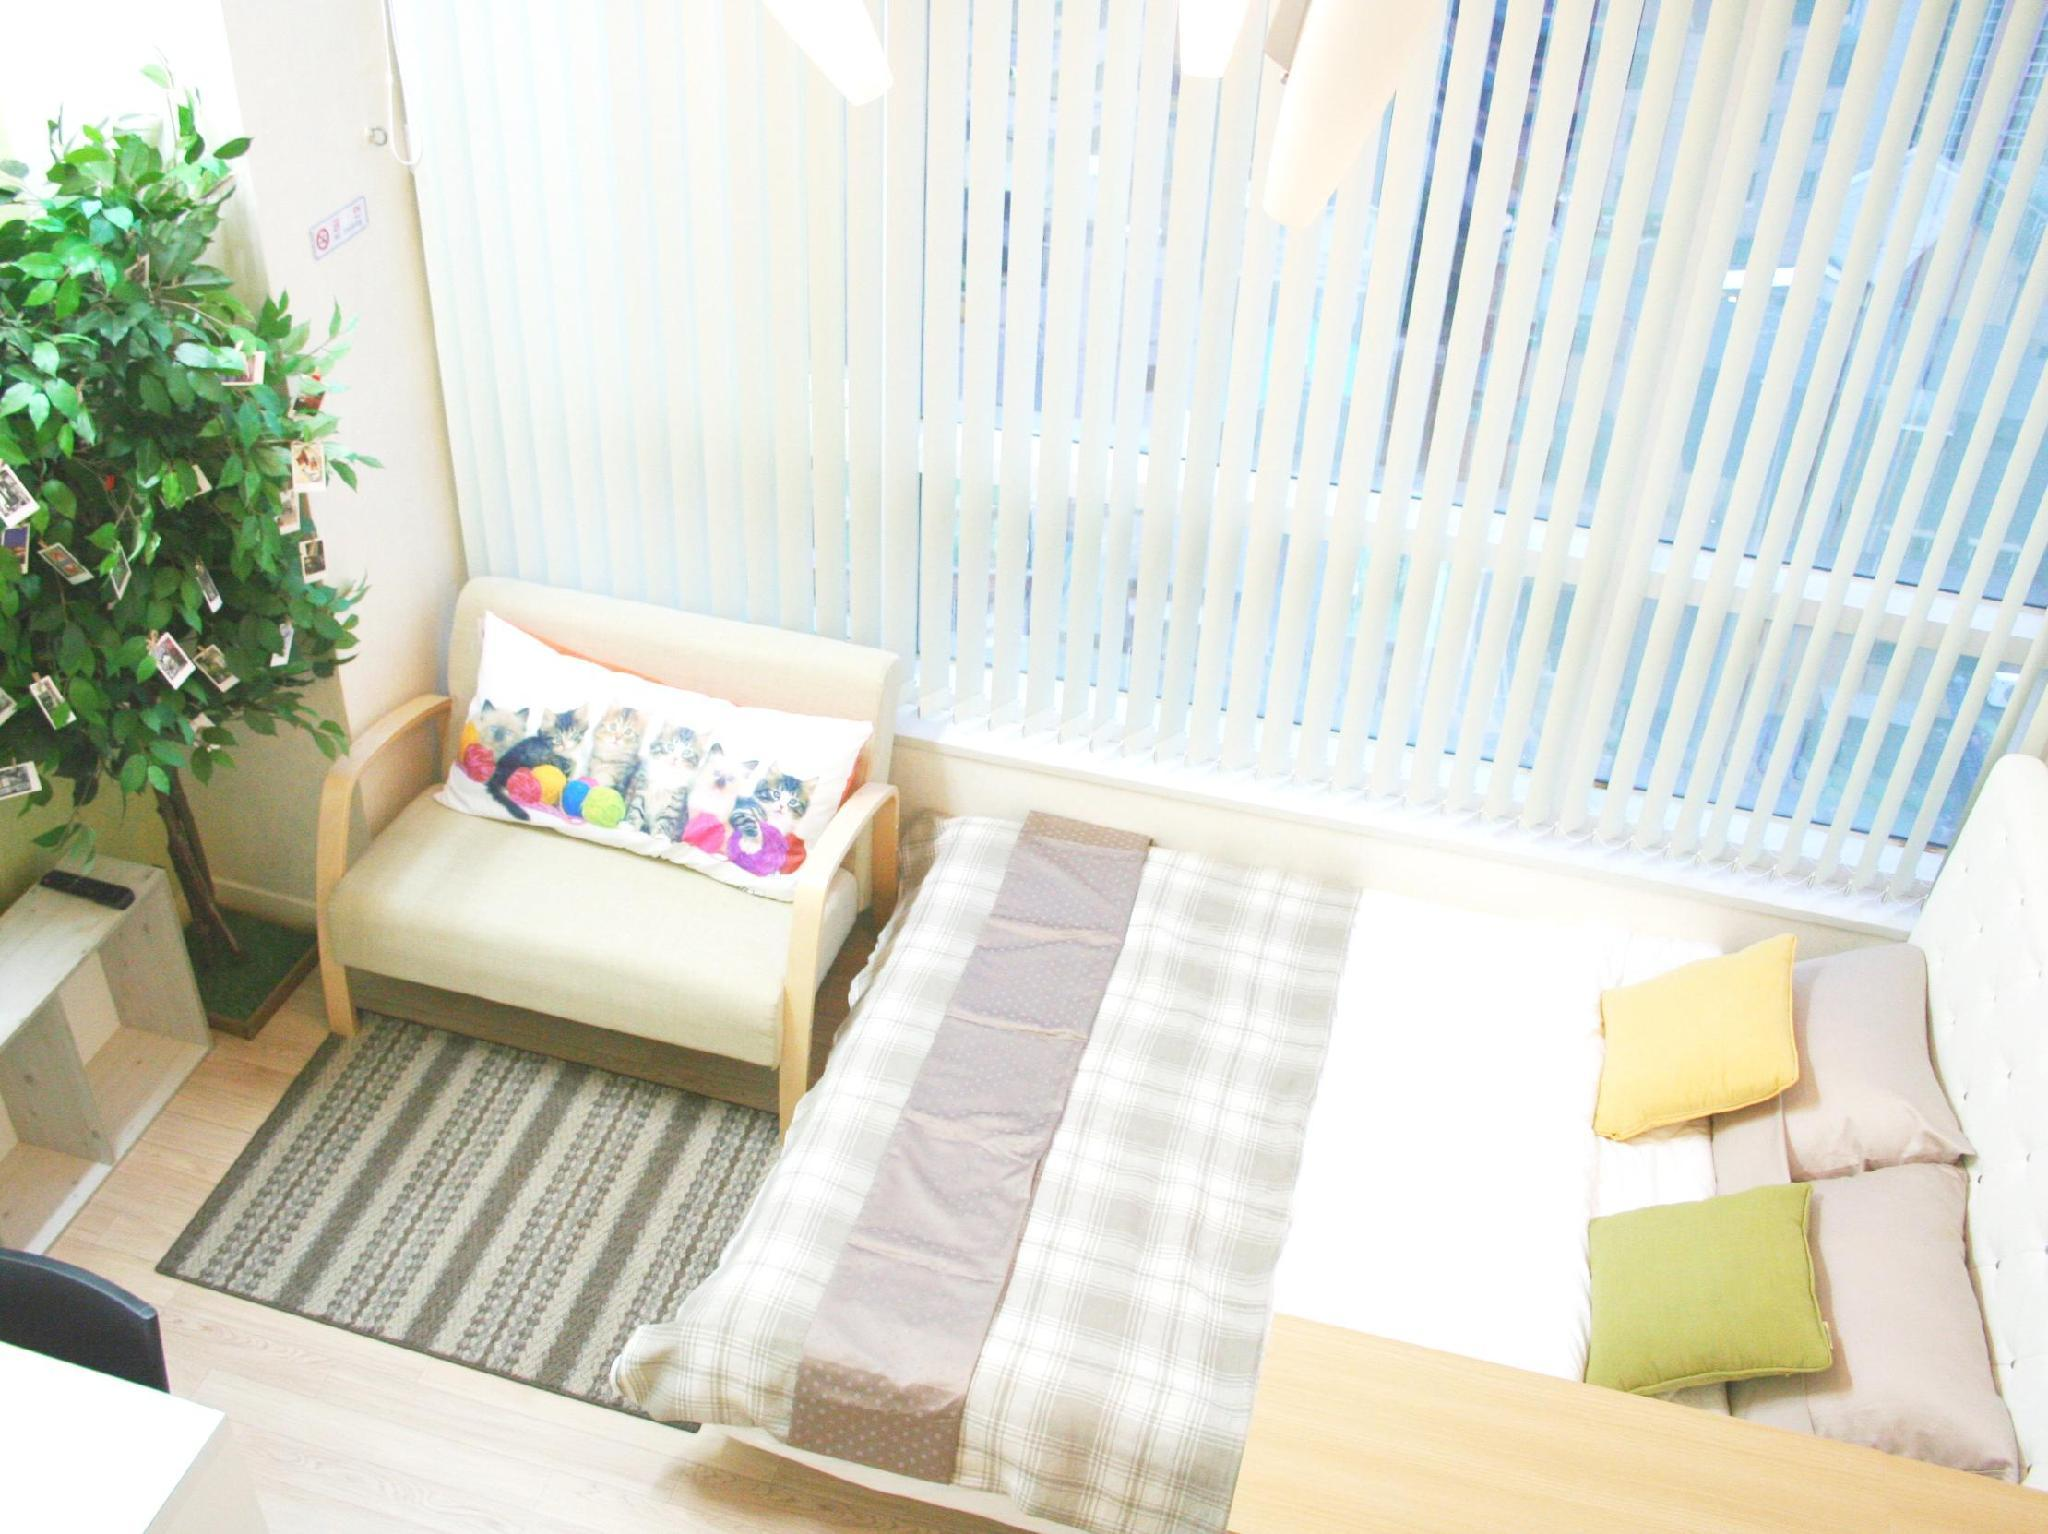 202 House Seoulstation Best Price On Banny Residence In Seoul Reviews